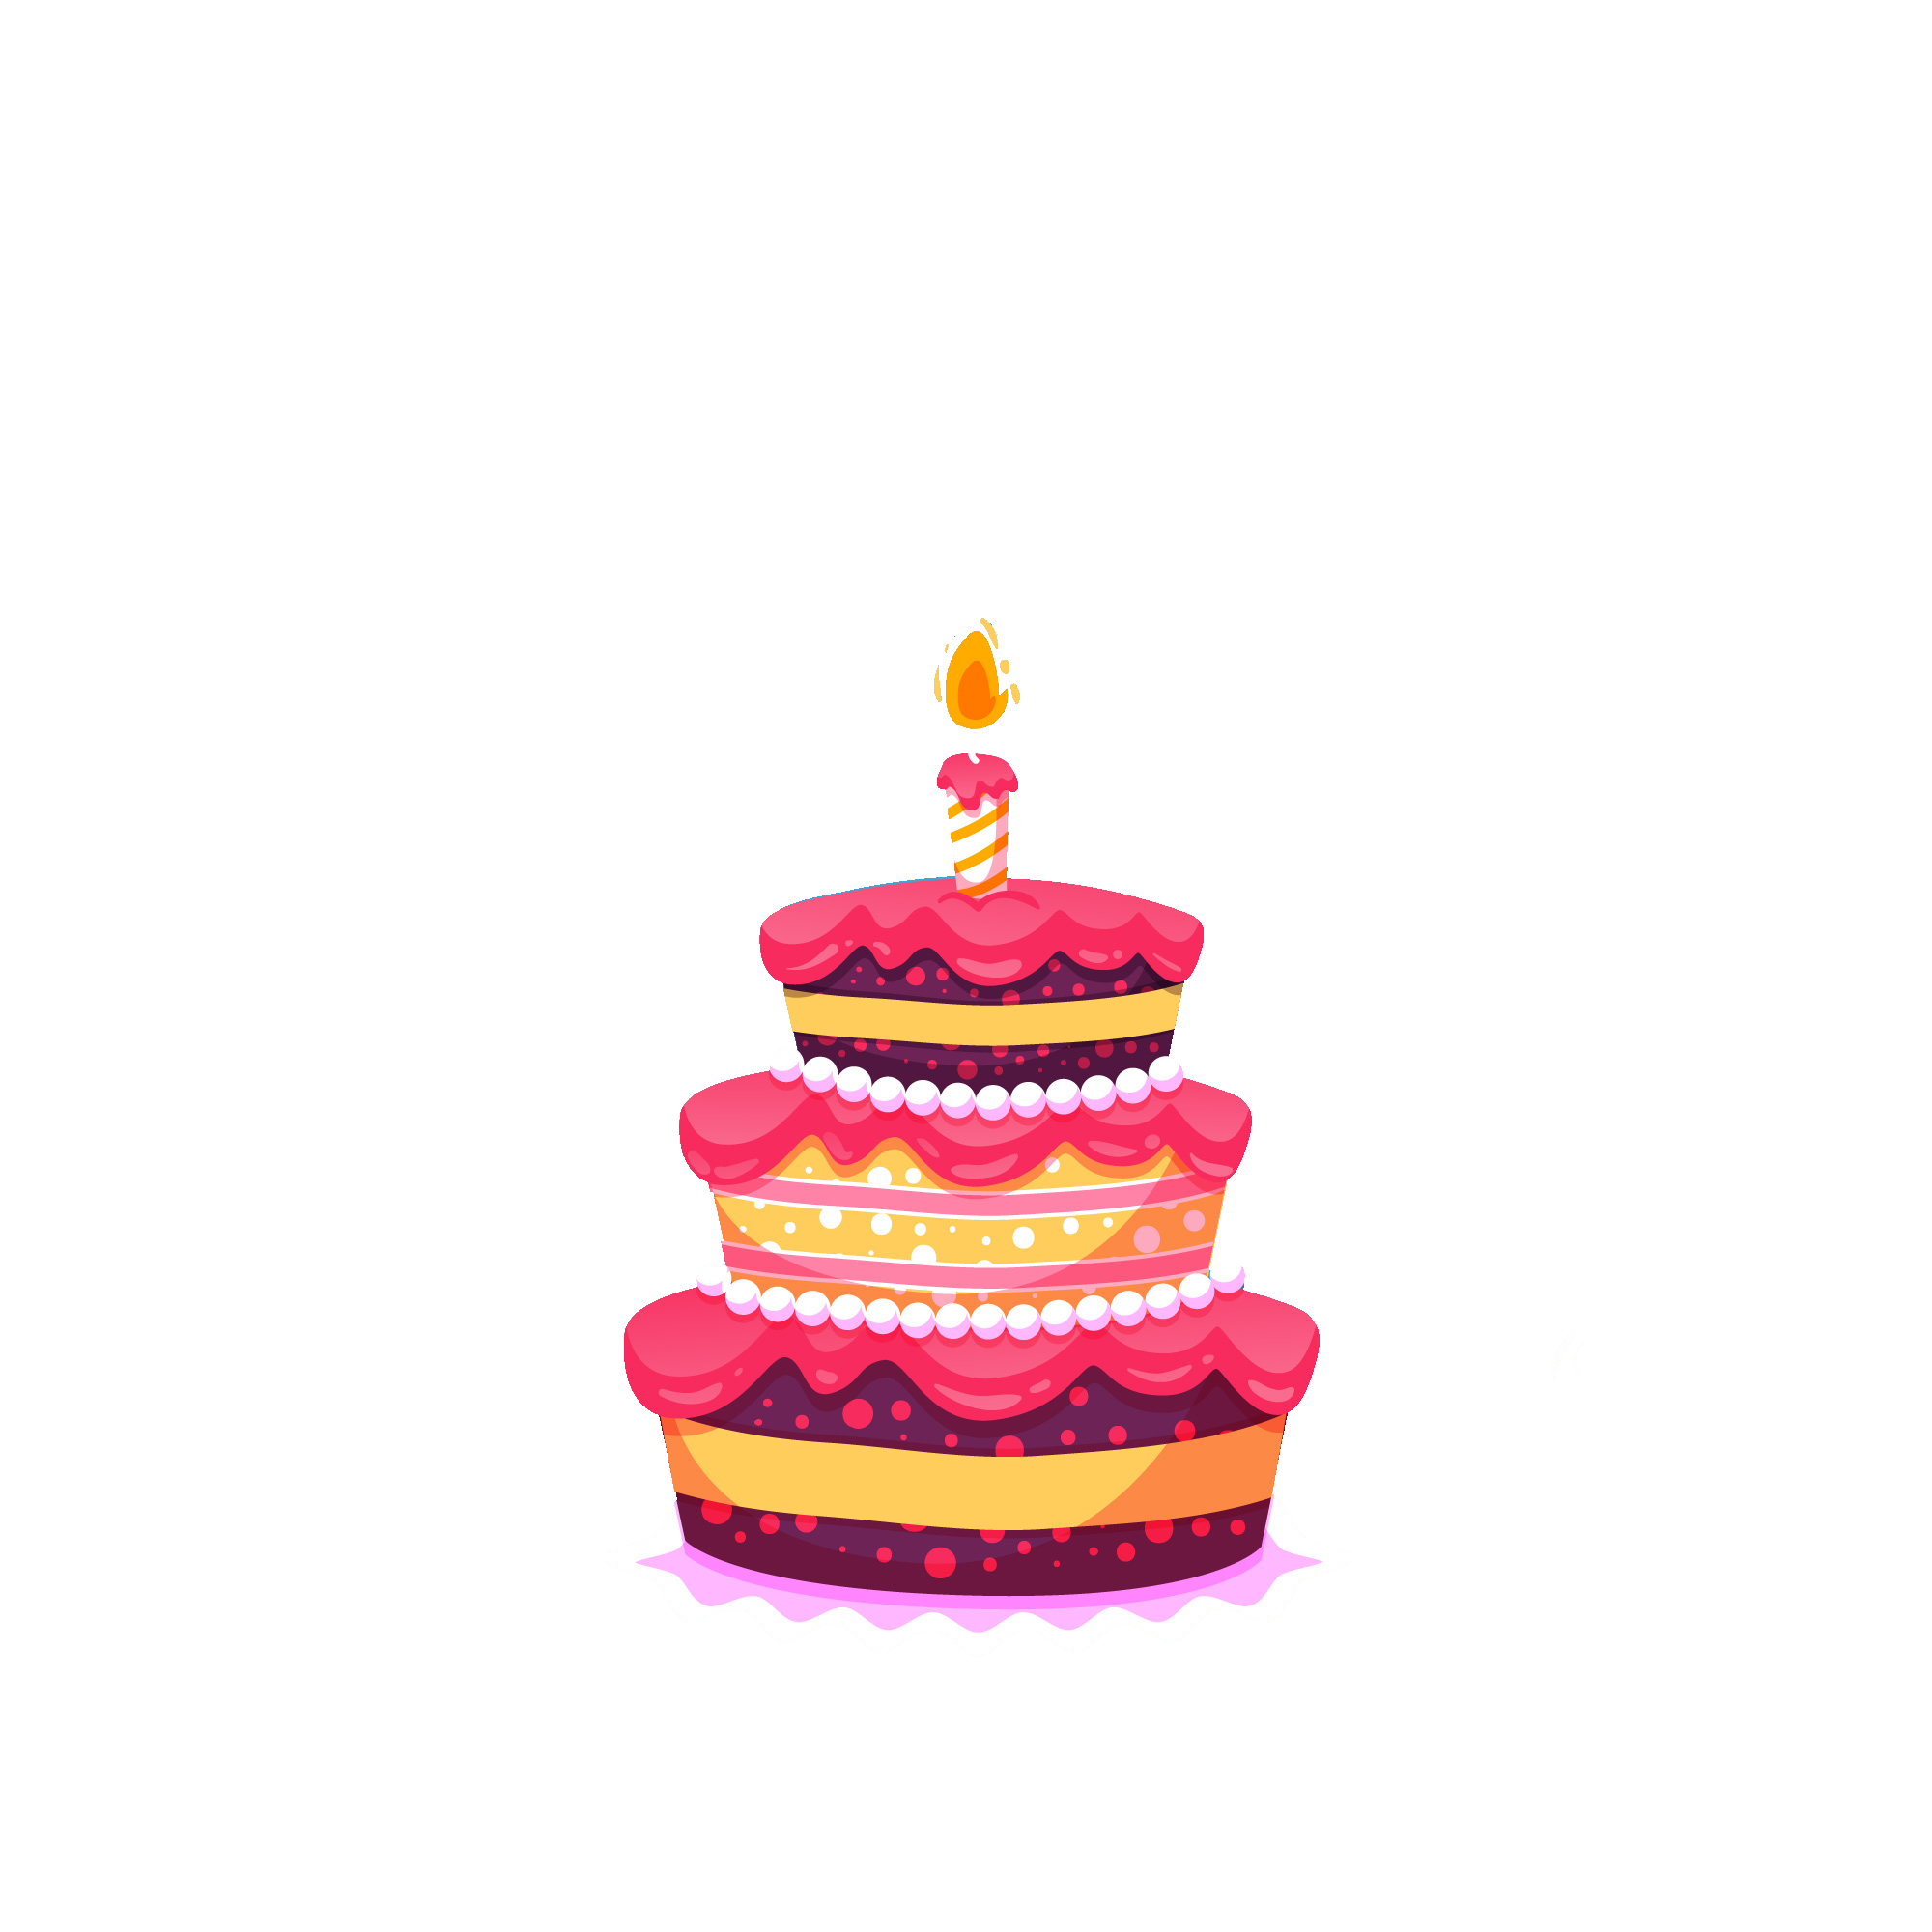 Happy birthday cake png. Peoplepng com